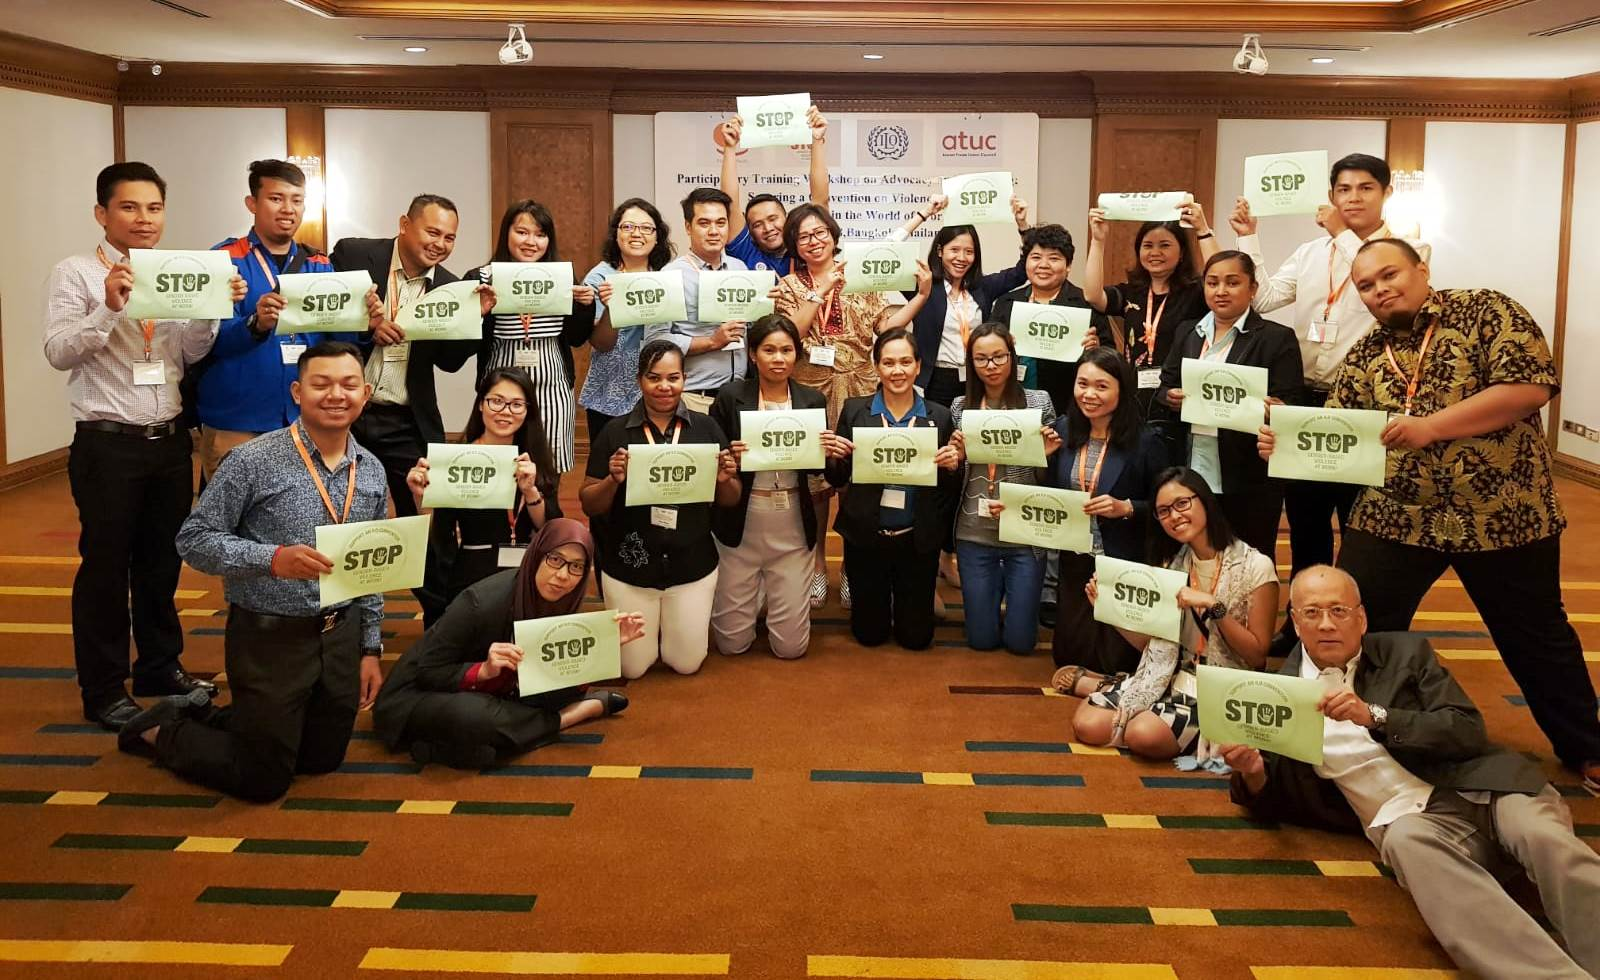 ituc-ap-atuc-advocacy training-gender-based-violence